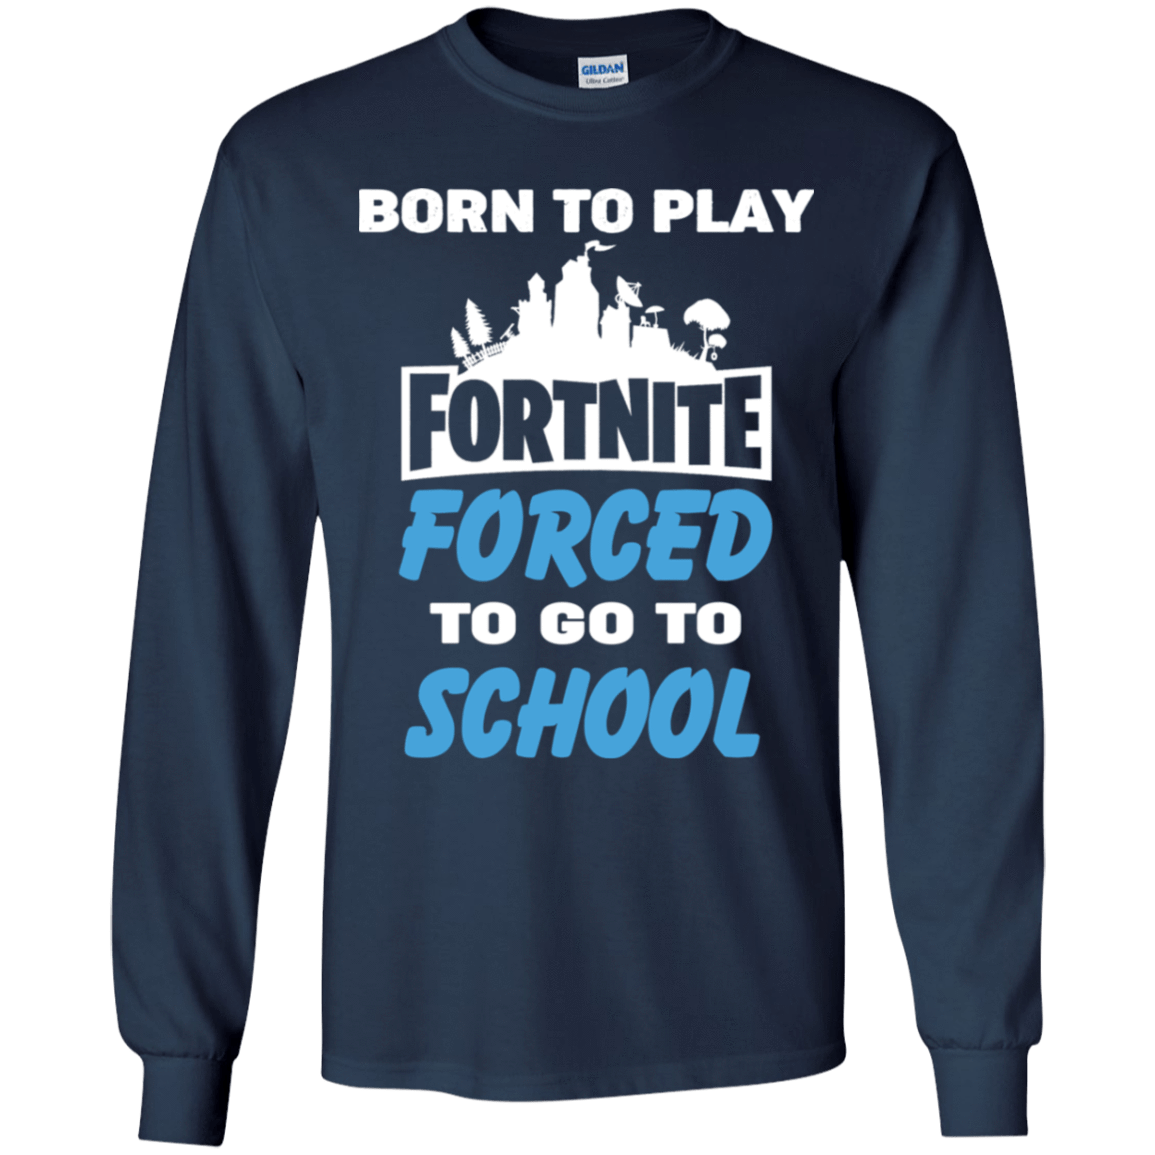 Born To Play Fortnite Forced To Go To School 56-321-74332976-1228 - Tee Ript